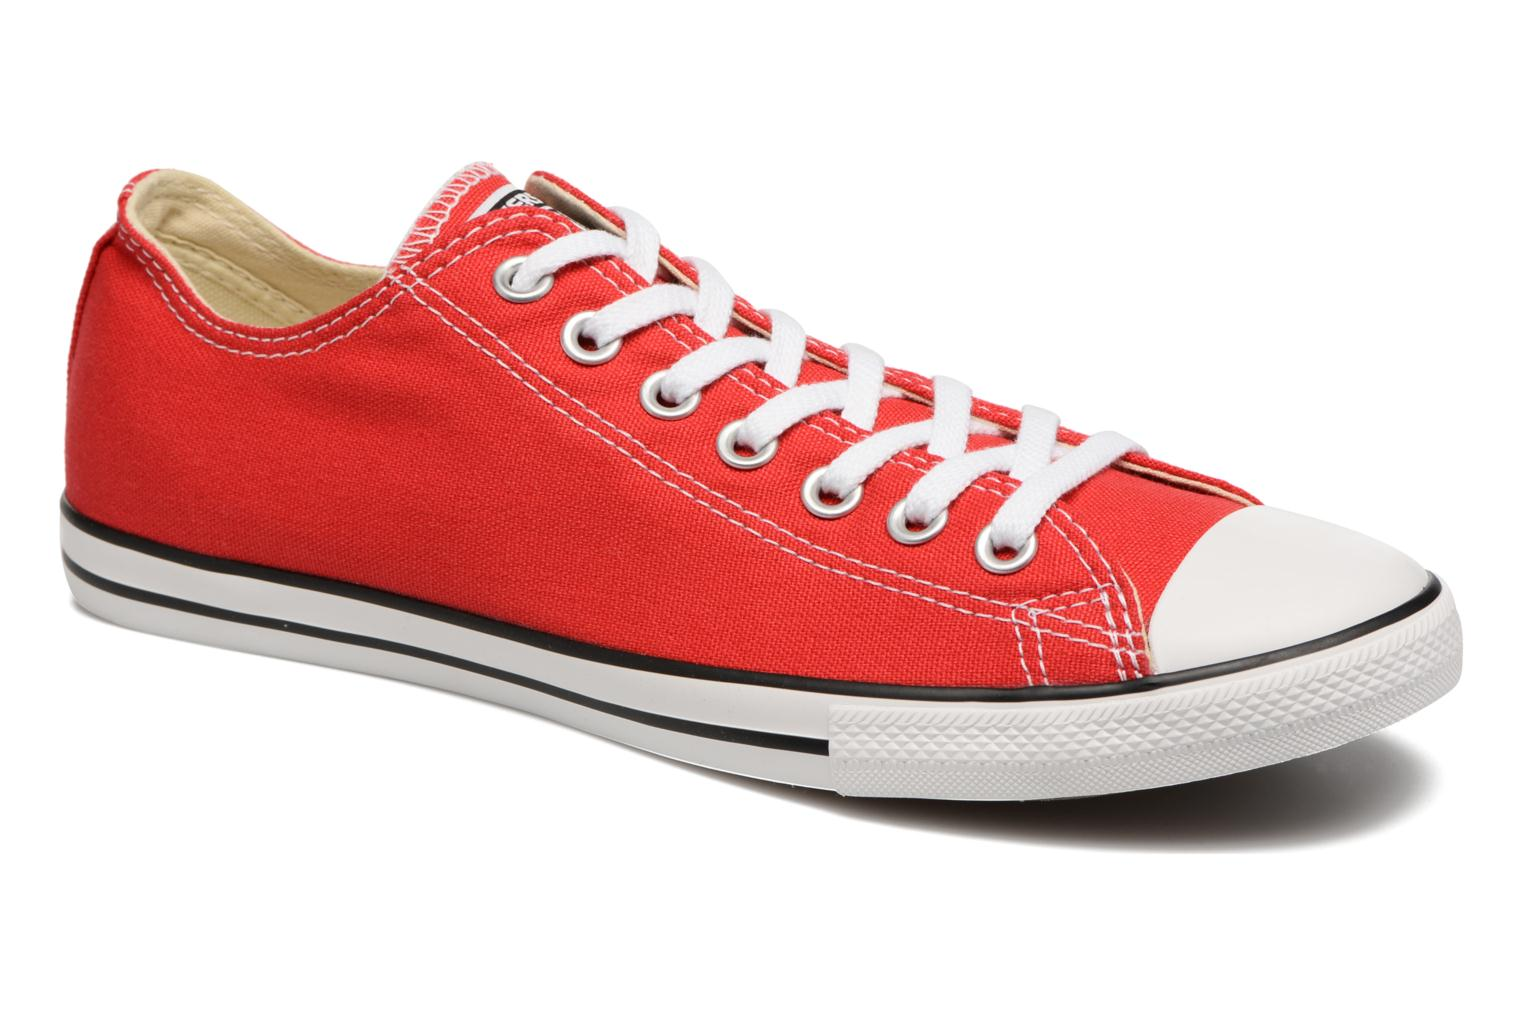 Uomo Converse Chuck Taylor All Star Ox M Sneakers Rosso